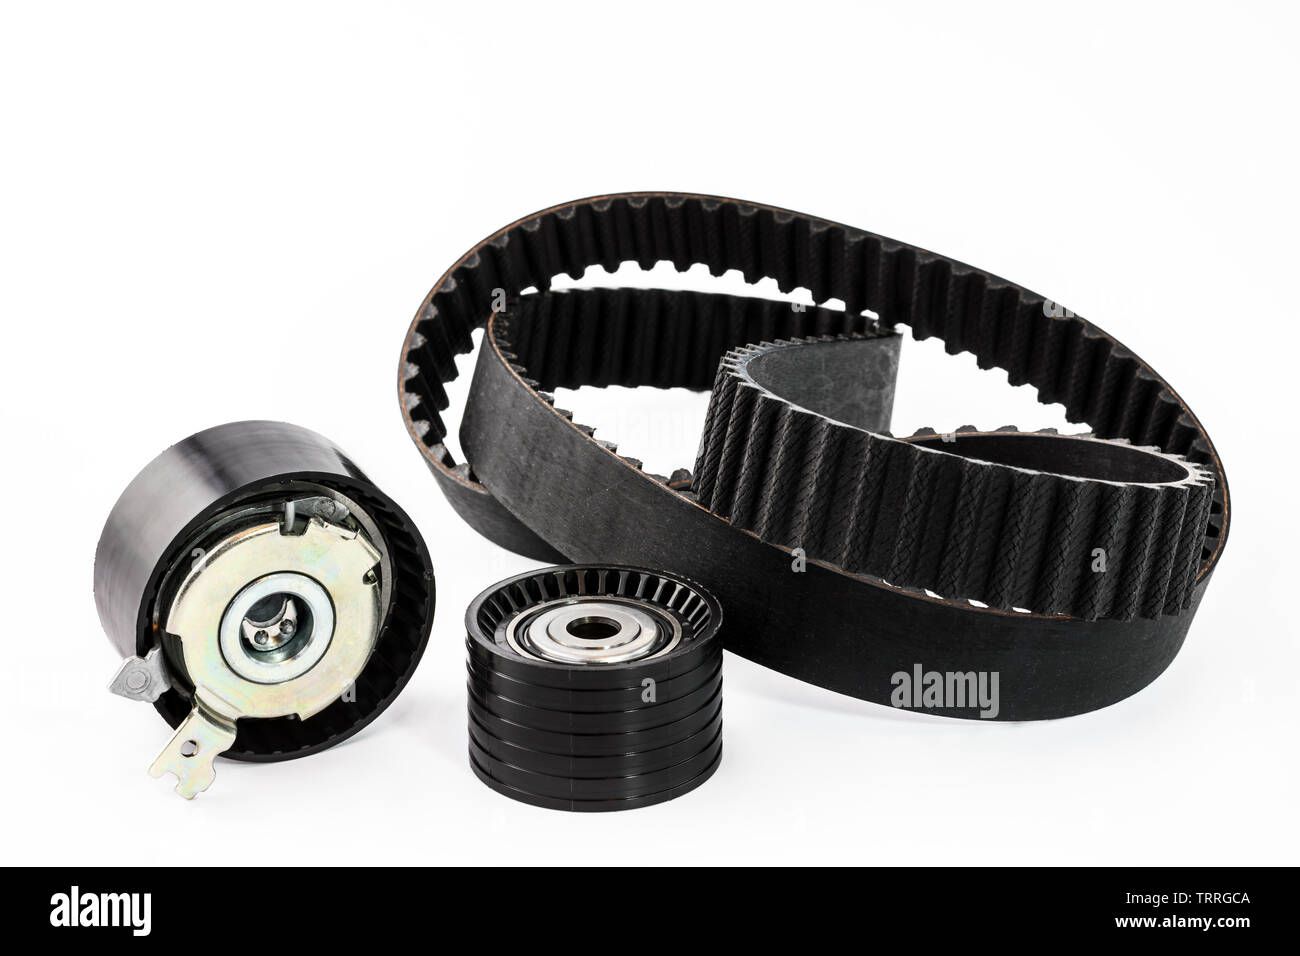 Spare parts for the car. The set of timing belt with rollers on a white background. - Stock Image